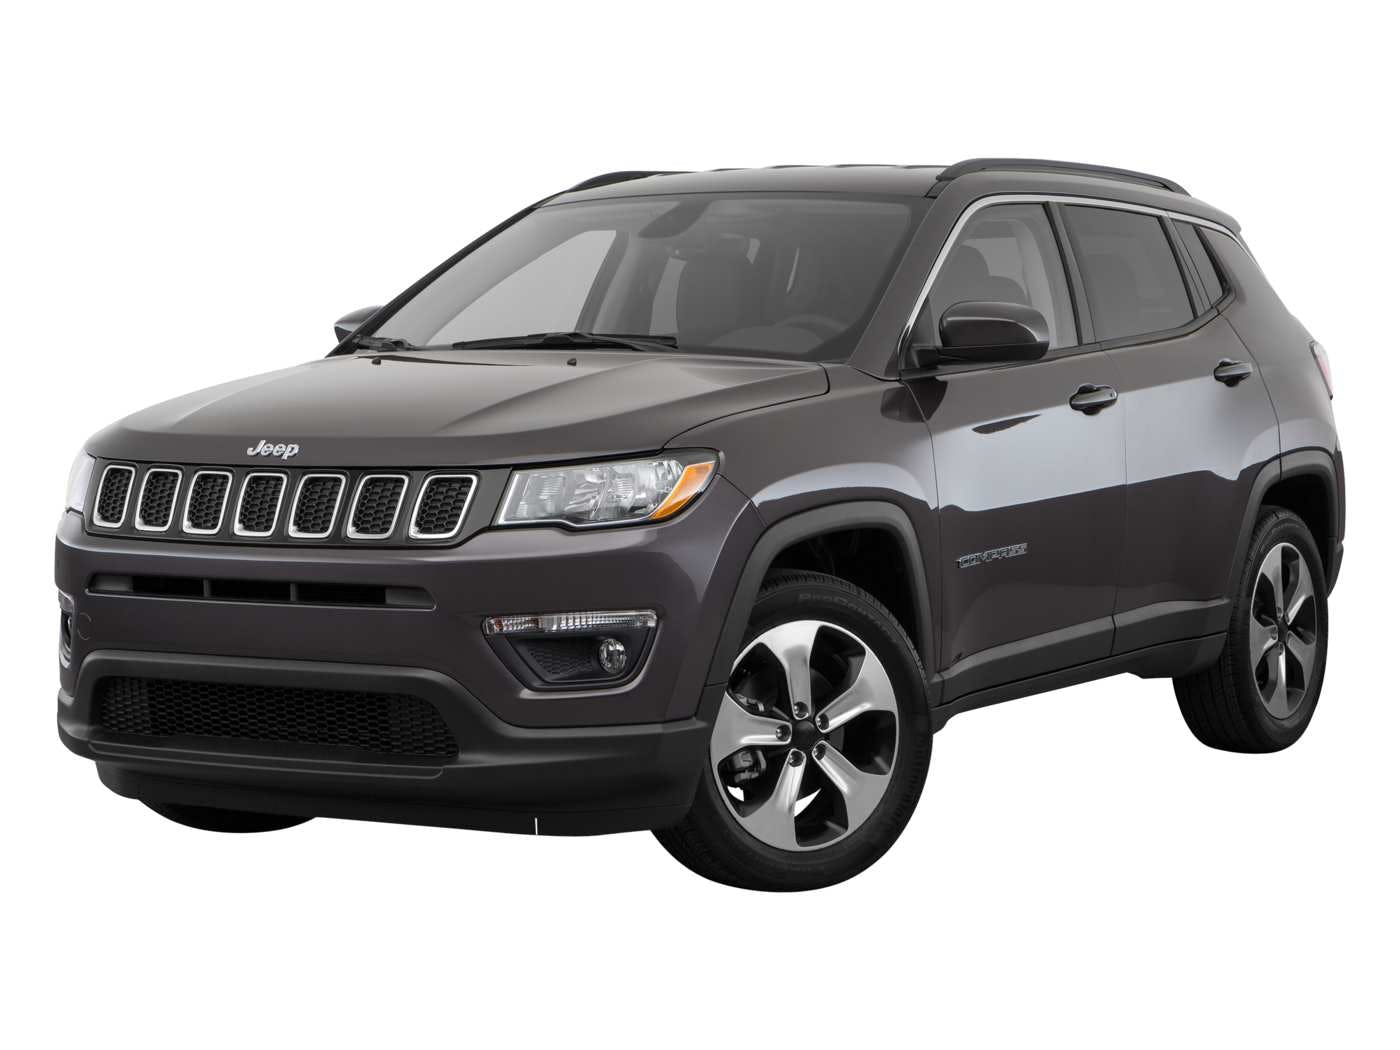 2019 Jeep Compass Prices Incentives Dealers Truecar Mopar Off Road Fog Driving Lights Wiring Kit Patriot Exterior Front Angle View